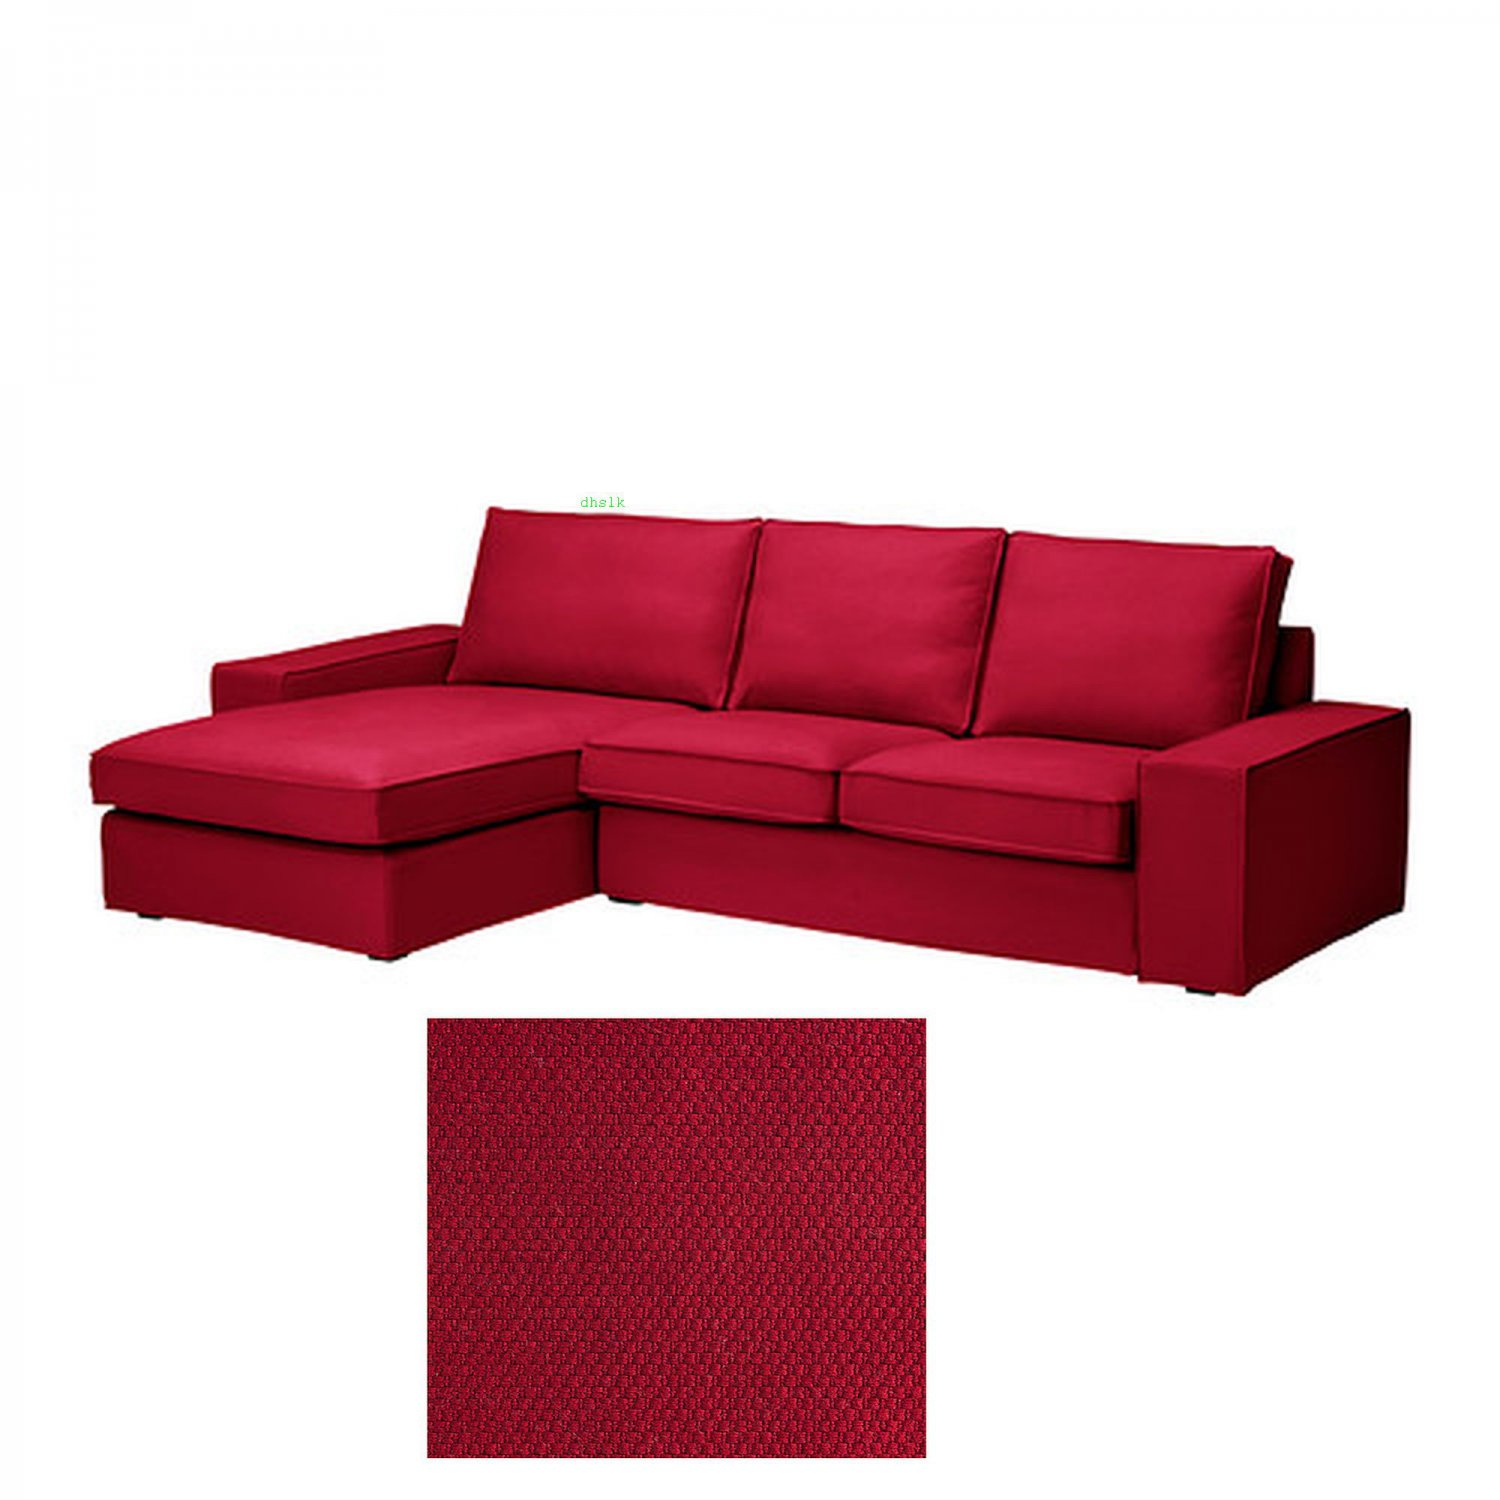 Ikea kivik 2 seat loveseat sofa w chaise lounge slipcover for Chaise lounge covers cotton